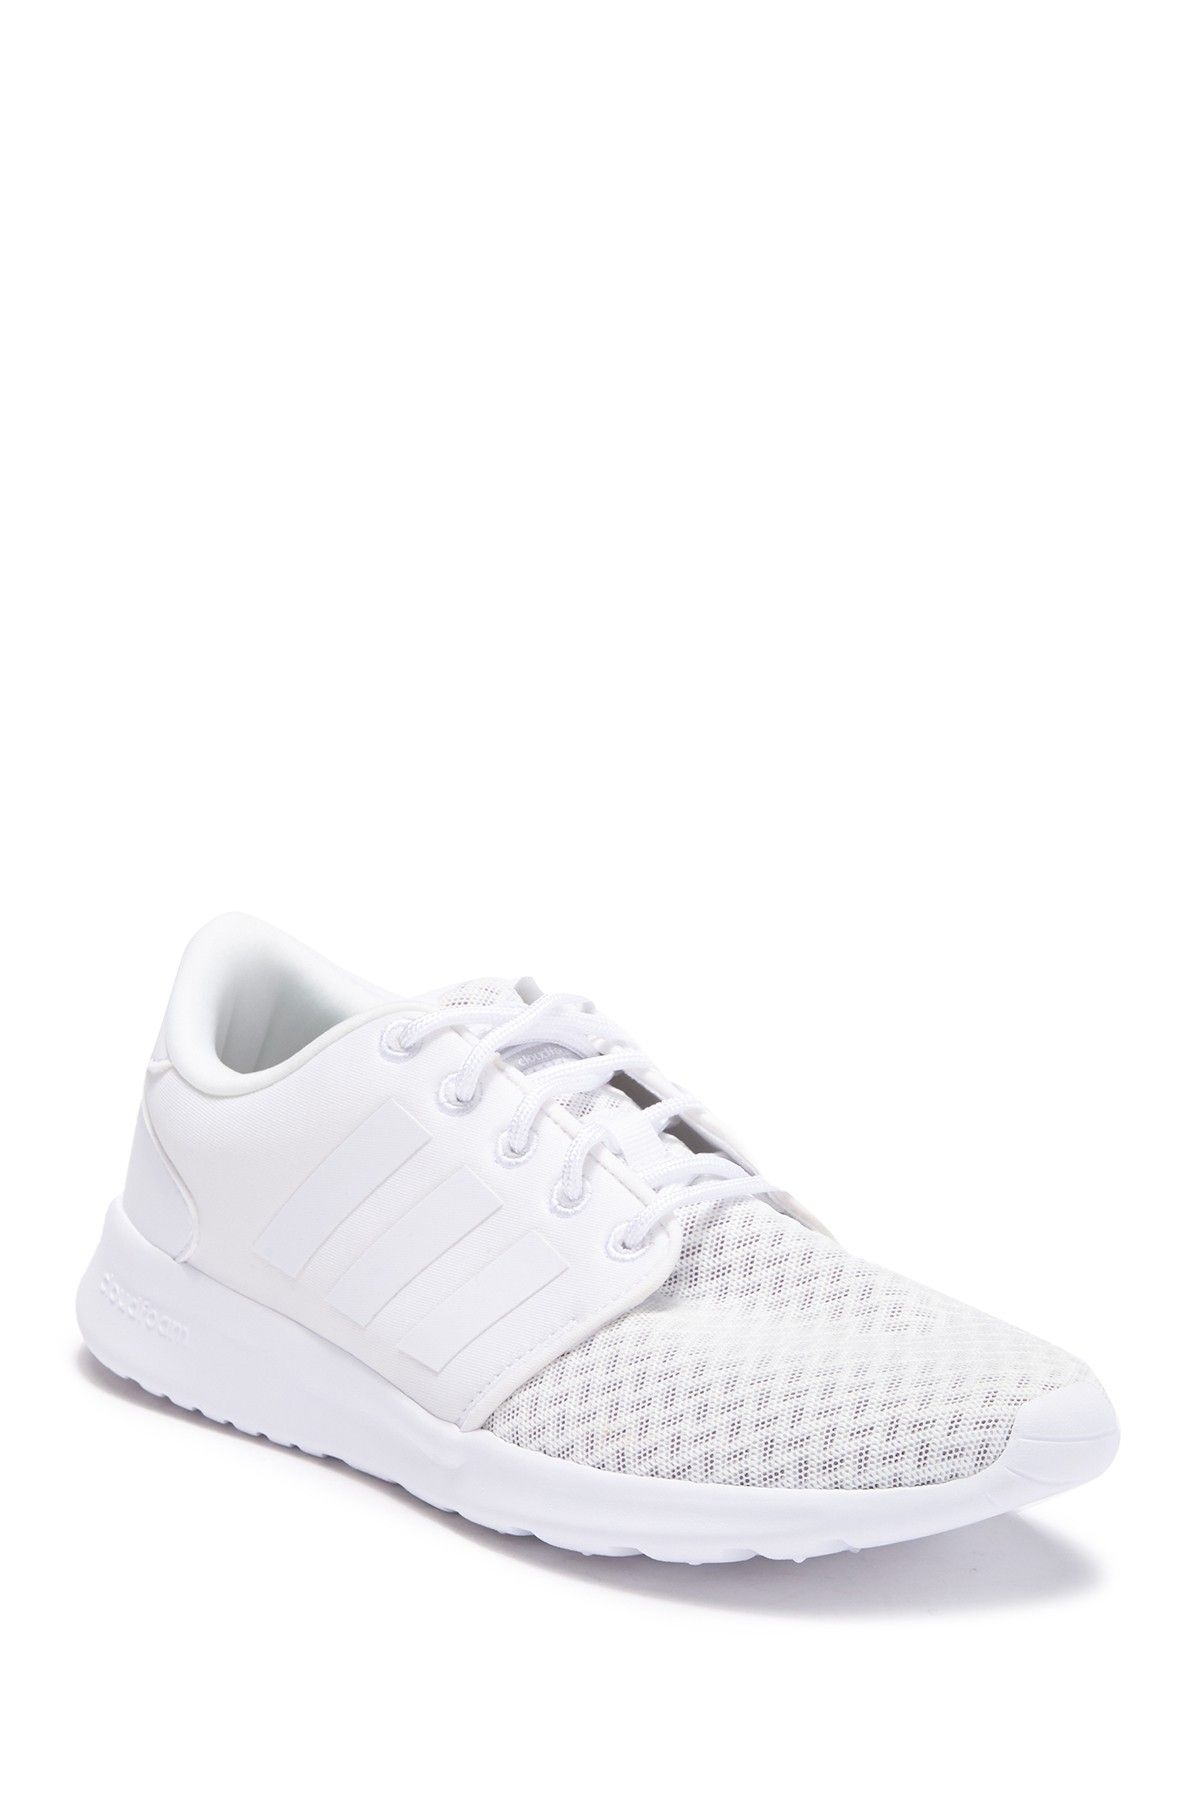 ed70b325d adidas - Cloudfoam QT Racer Sneakers is now 29% off. Free Shipping on  orders over  100.